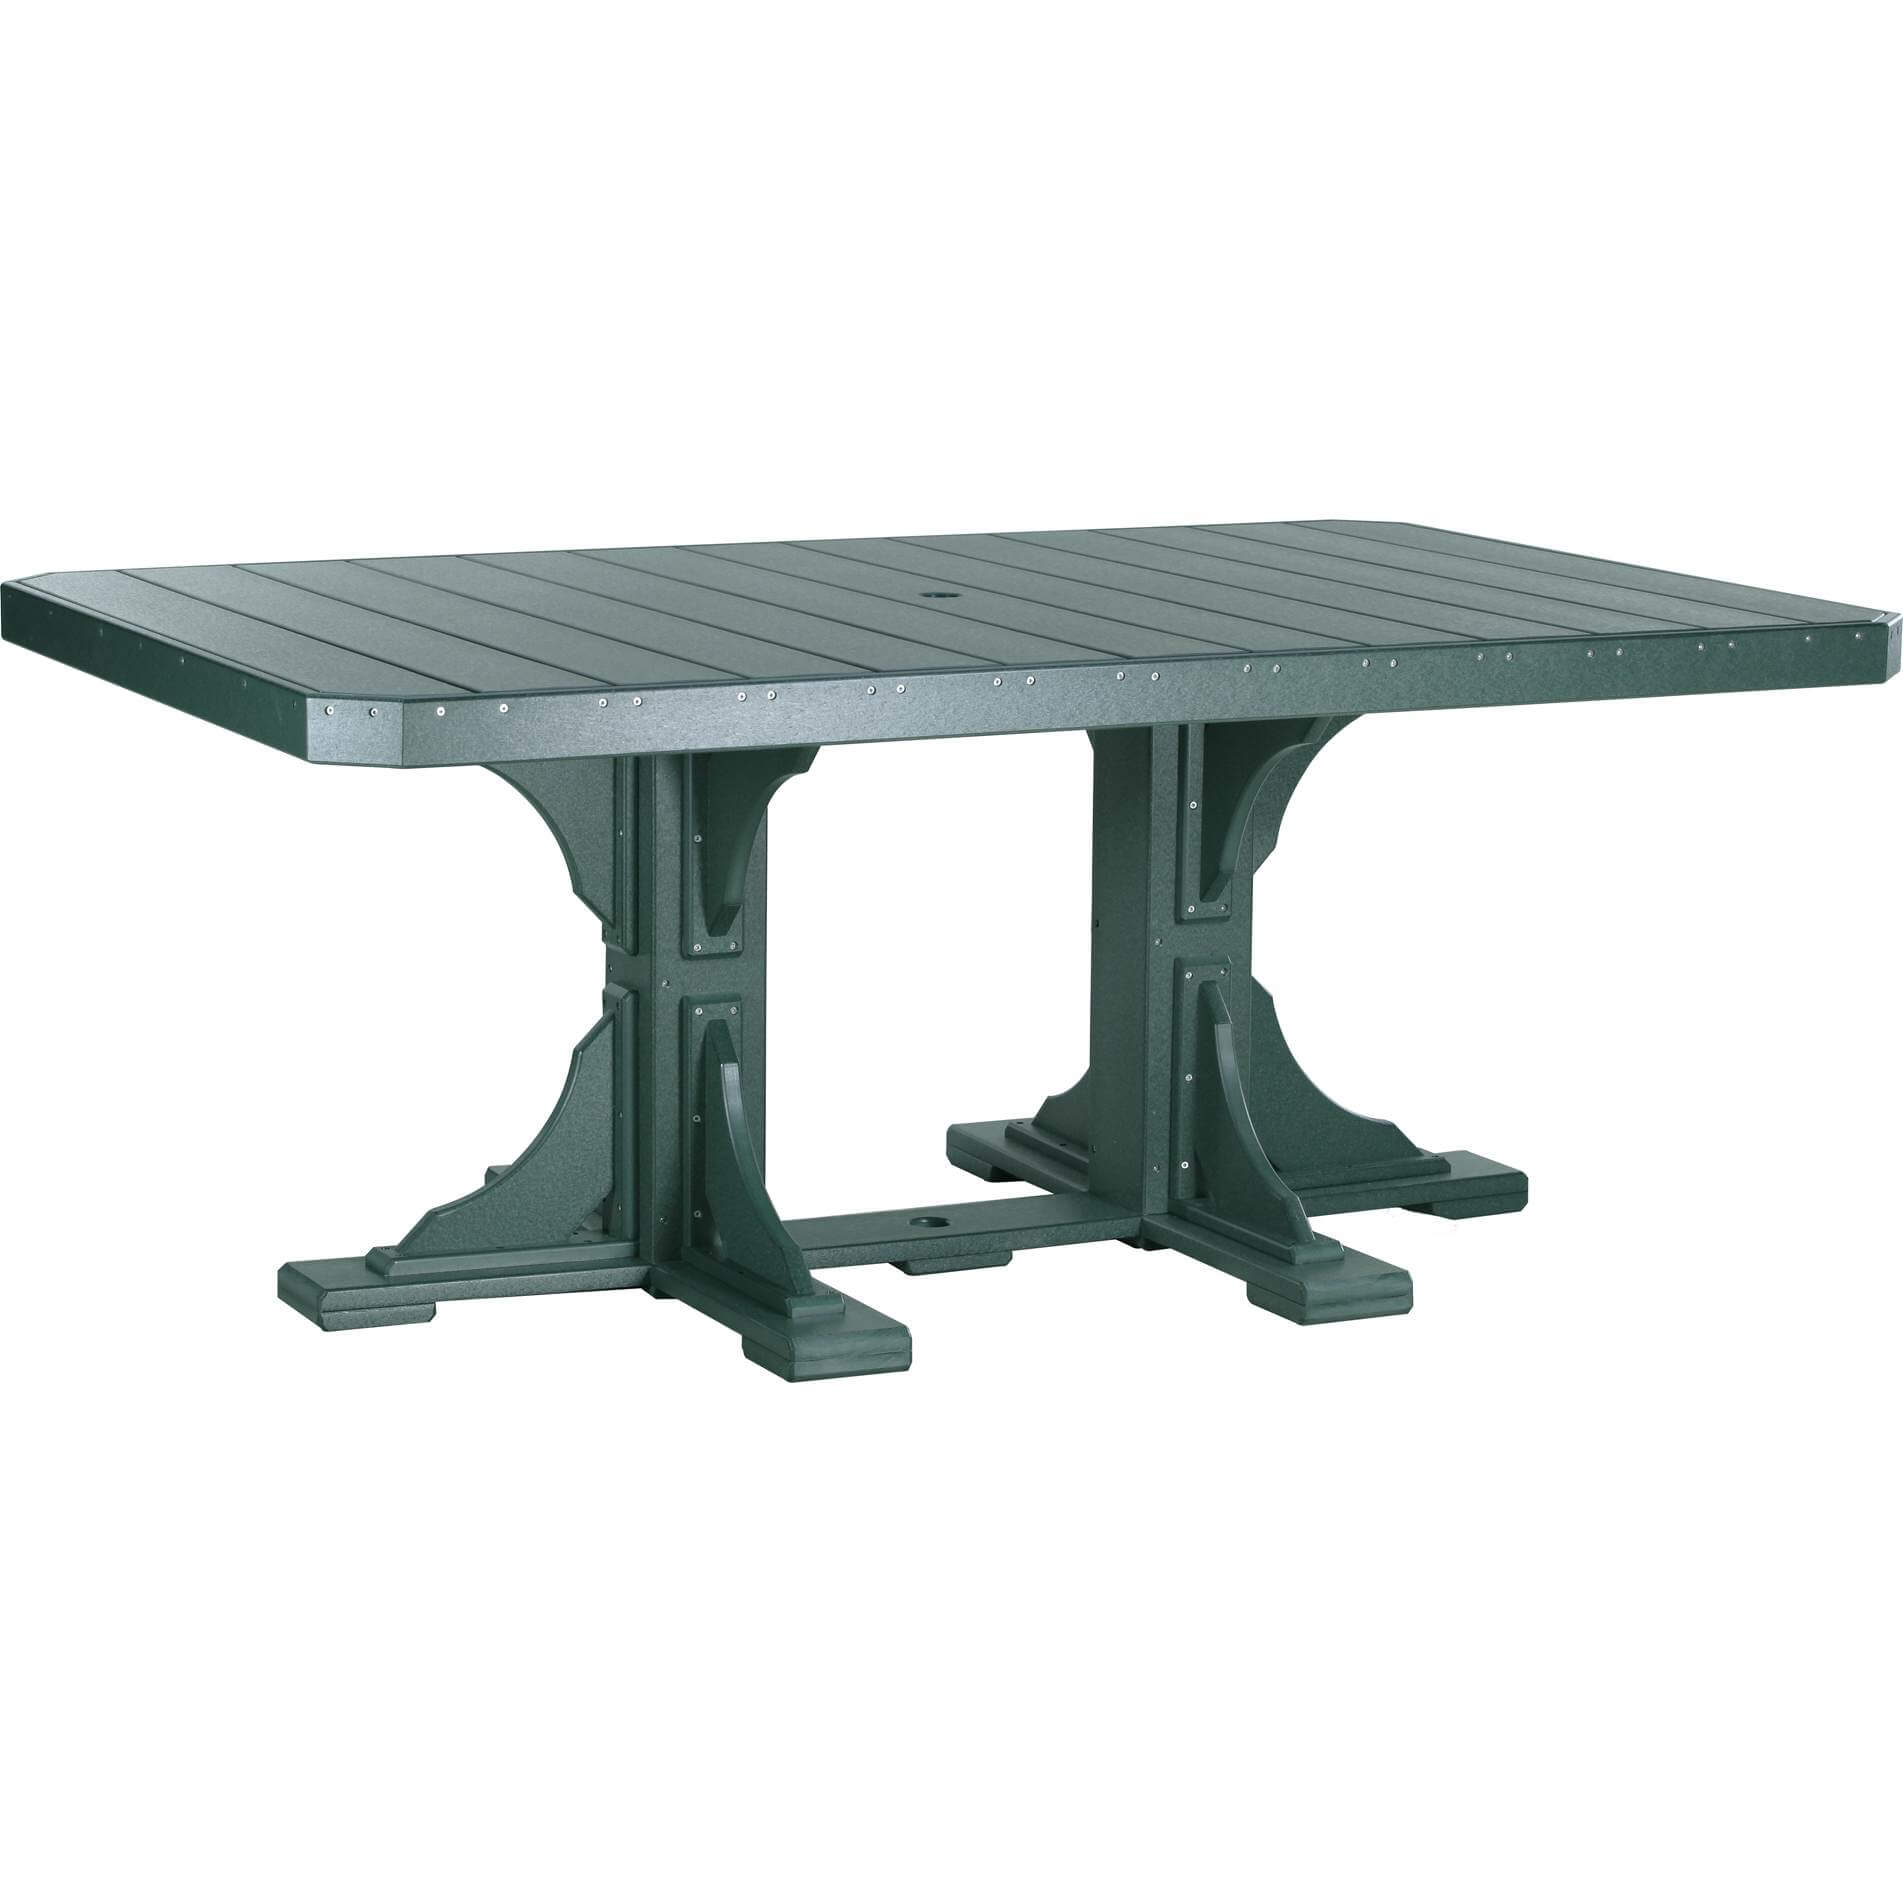 6 Ft Square Dining Table Luxcraft Poly 4x6 Rectangular Table Hostetler 39s Furniture